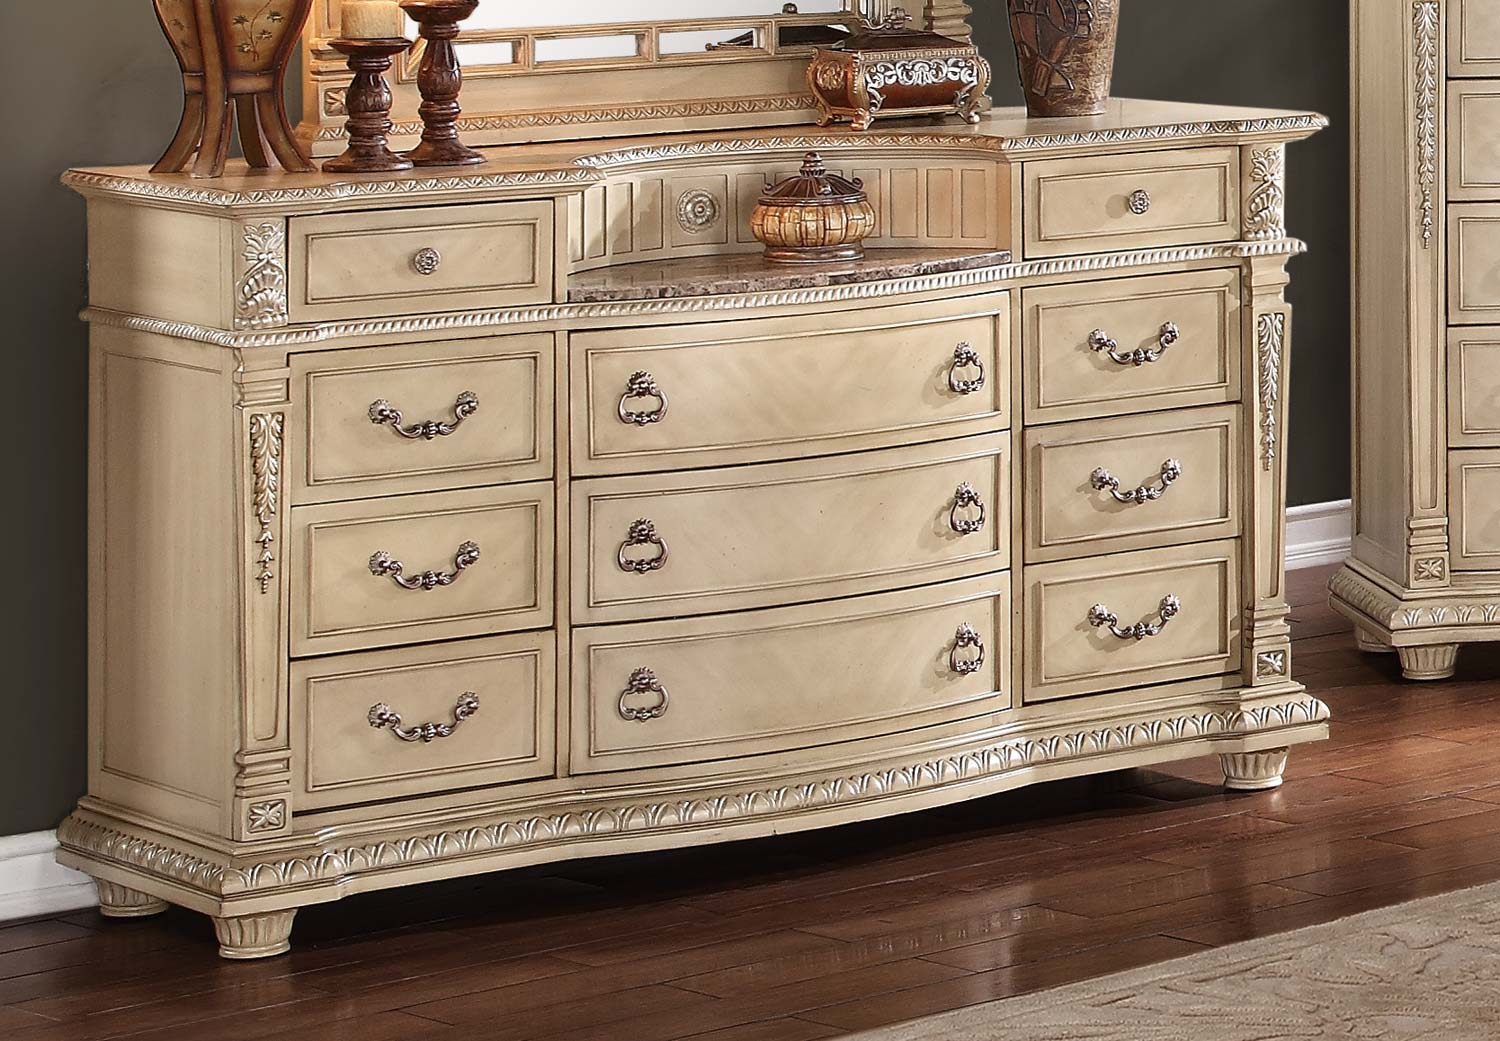 Homelegance Palace II Marble Top Dresser - Antique White